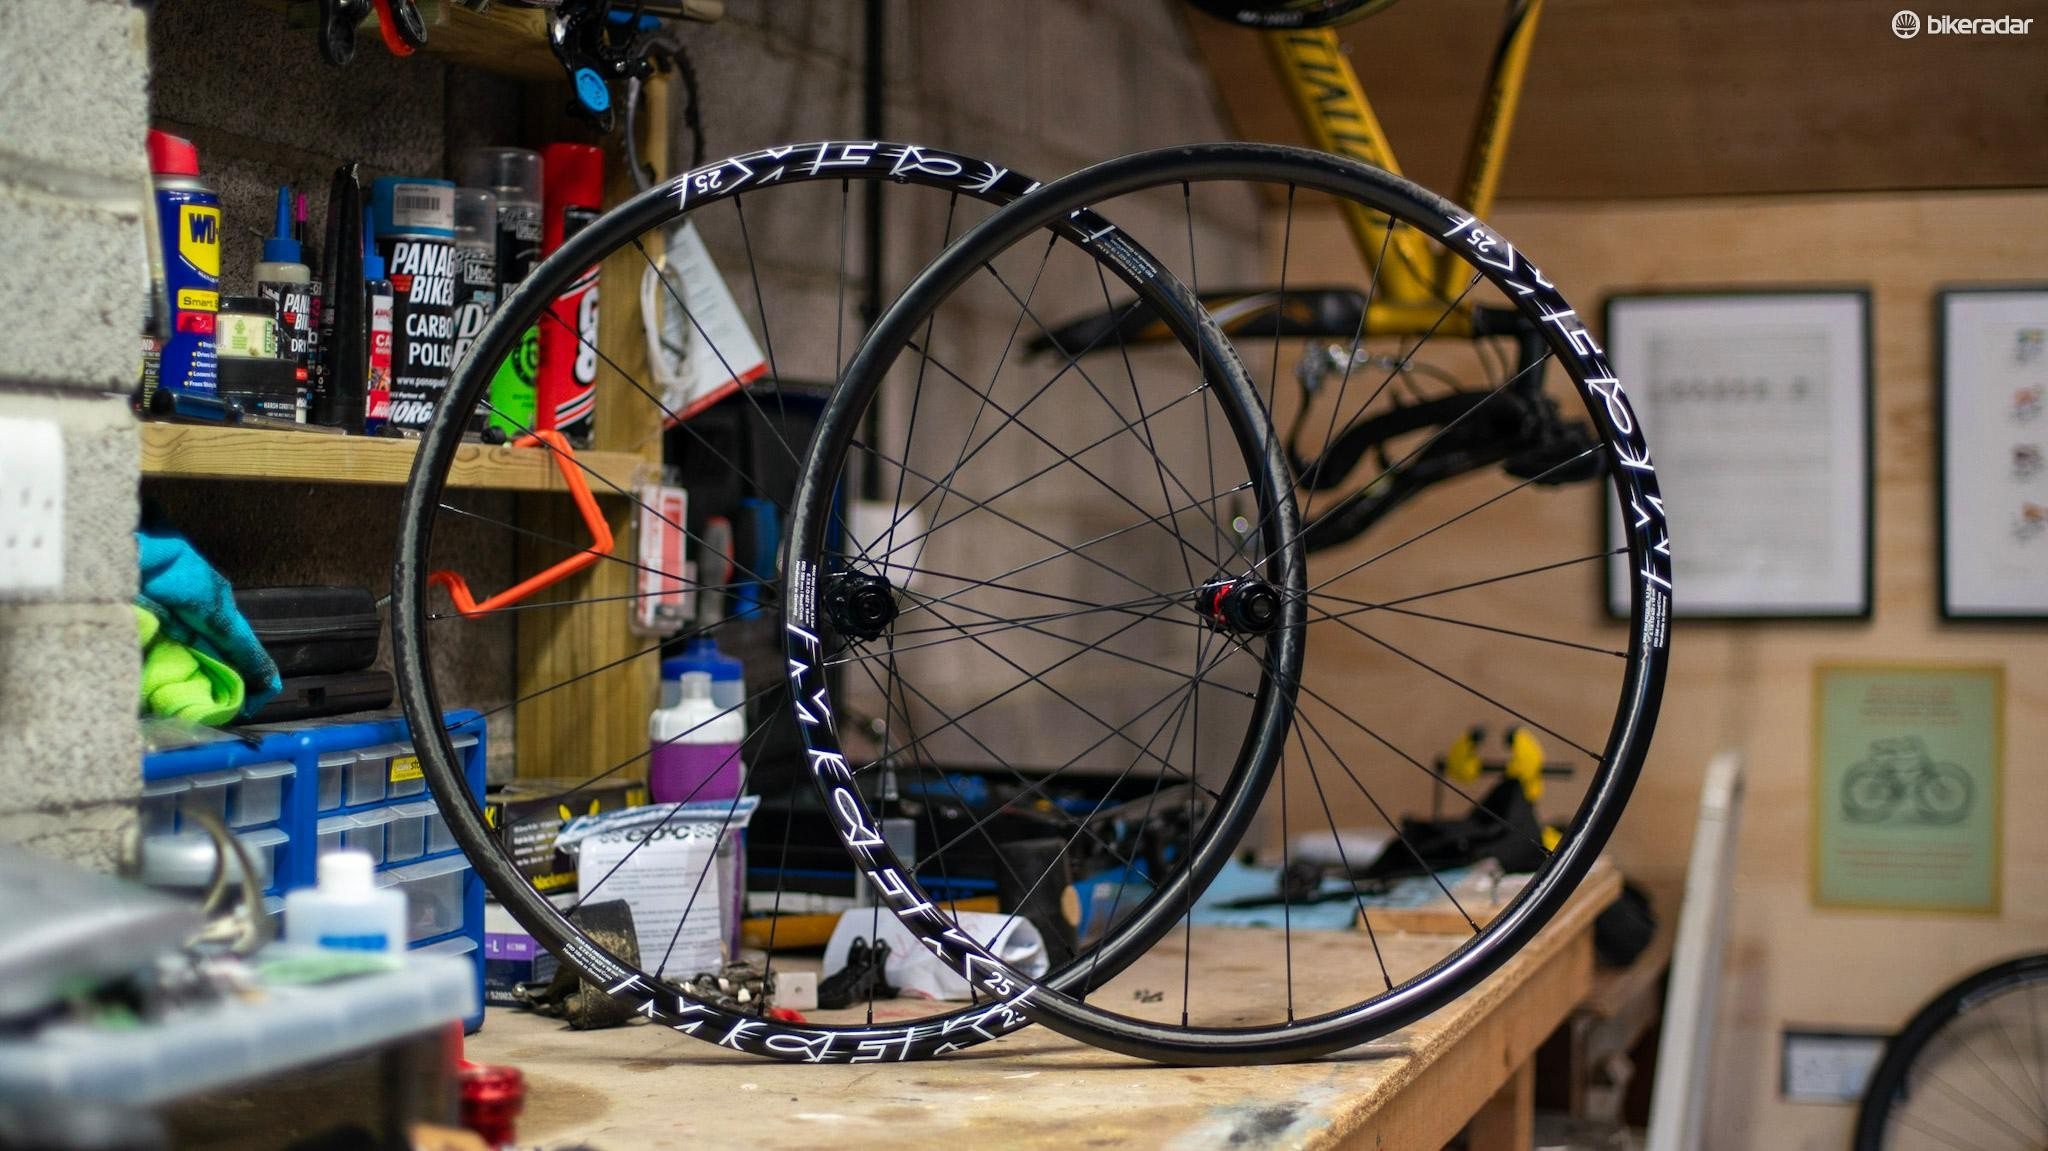 MFCK's 25 wheels have a rim-depth of 25mm and internal width of 18mm. They weigh 1,256g on our scales